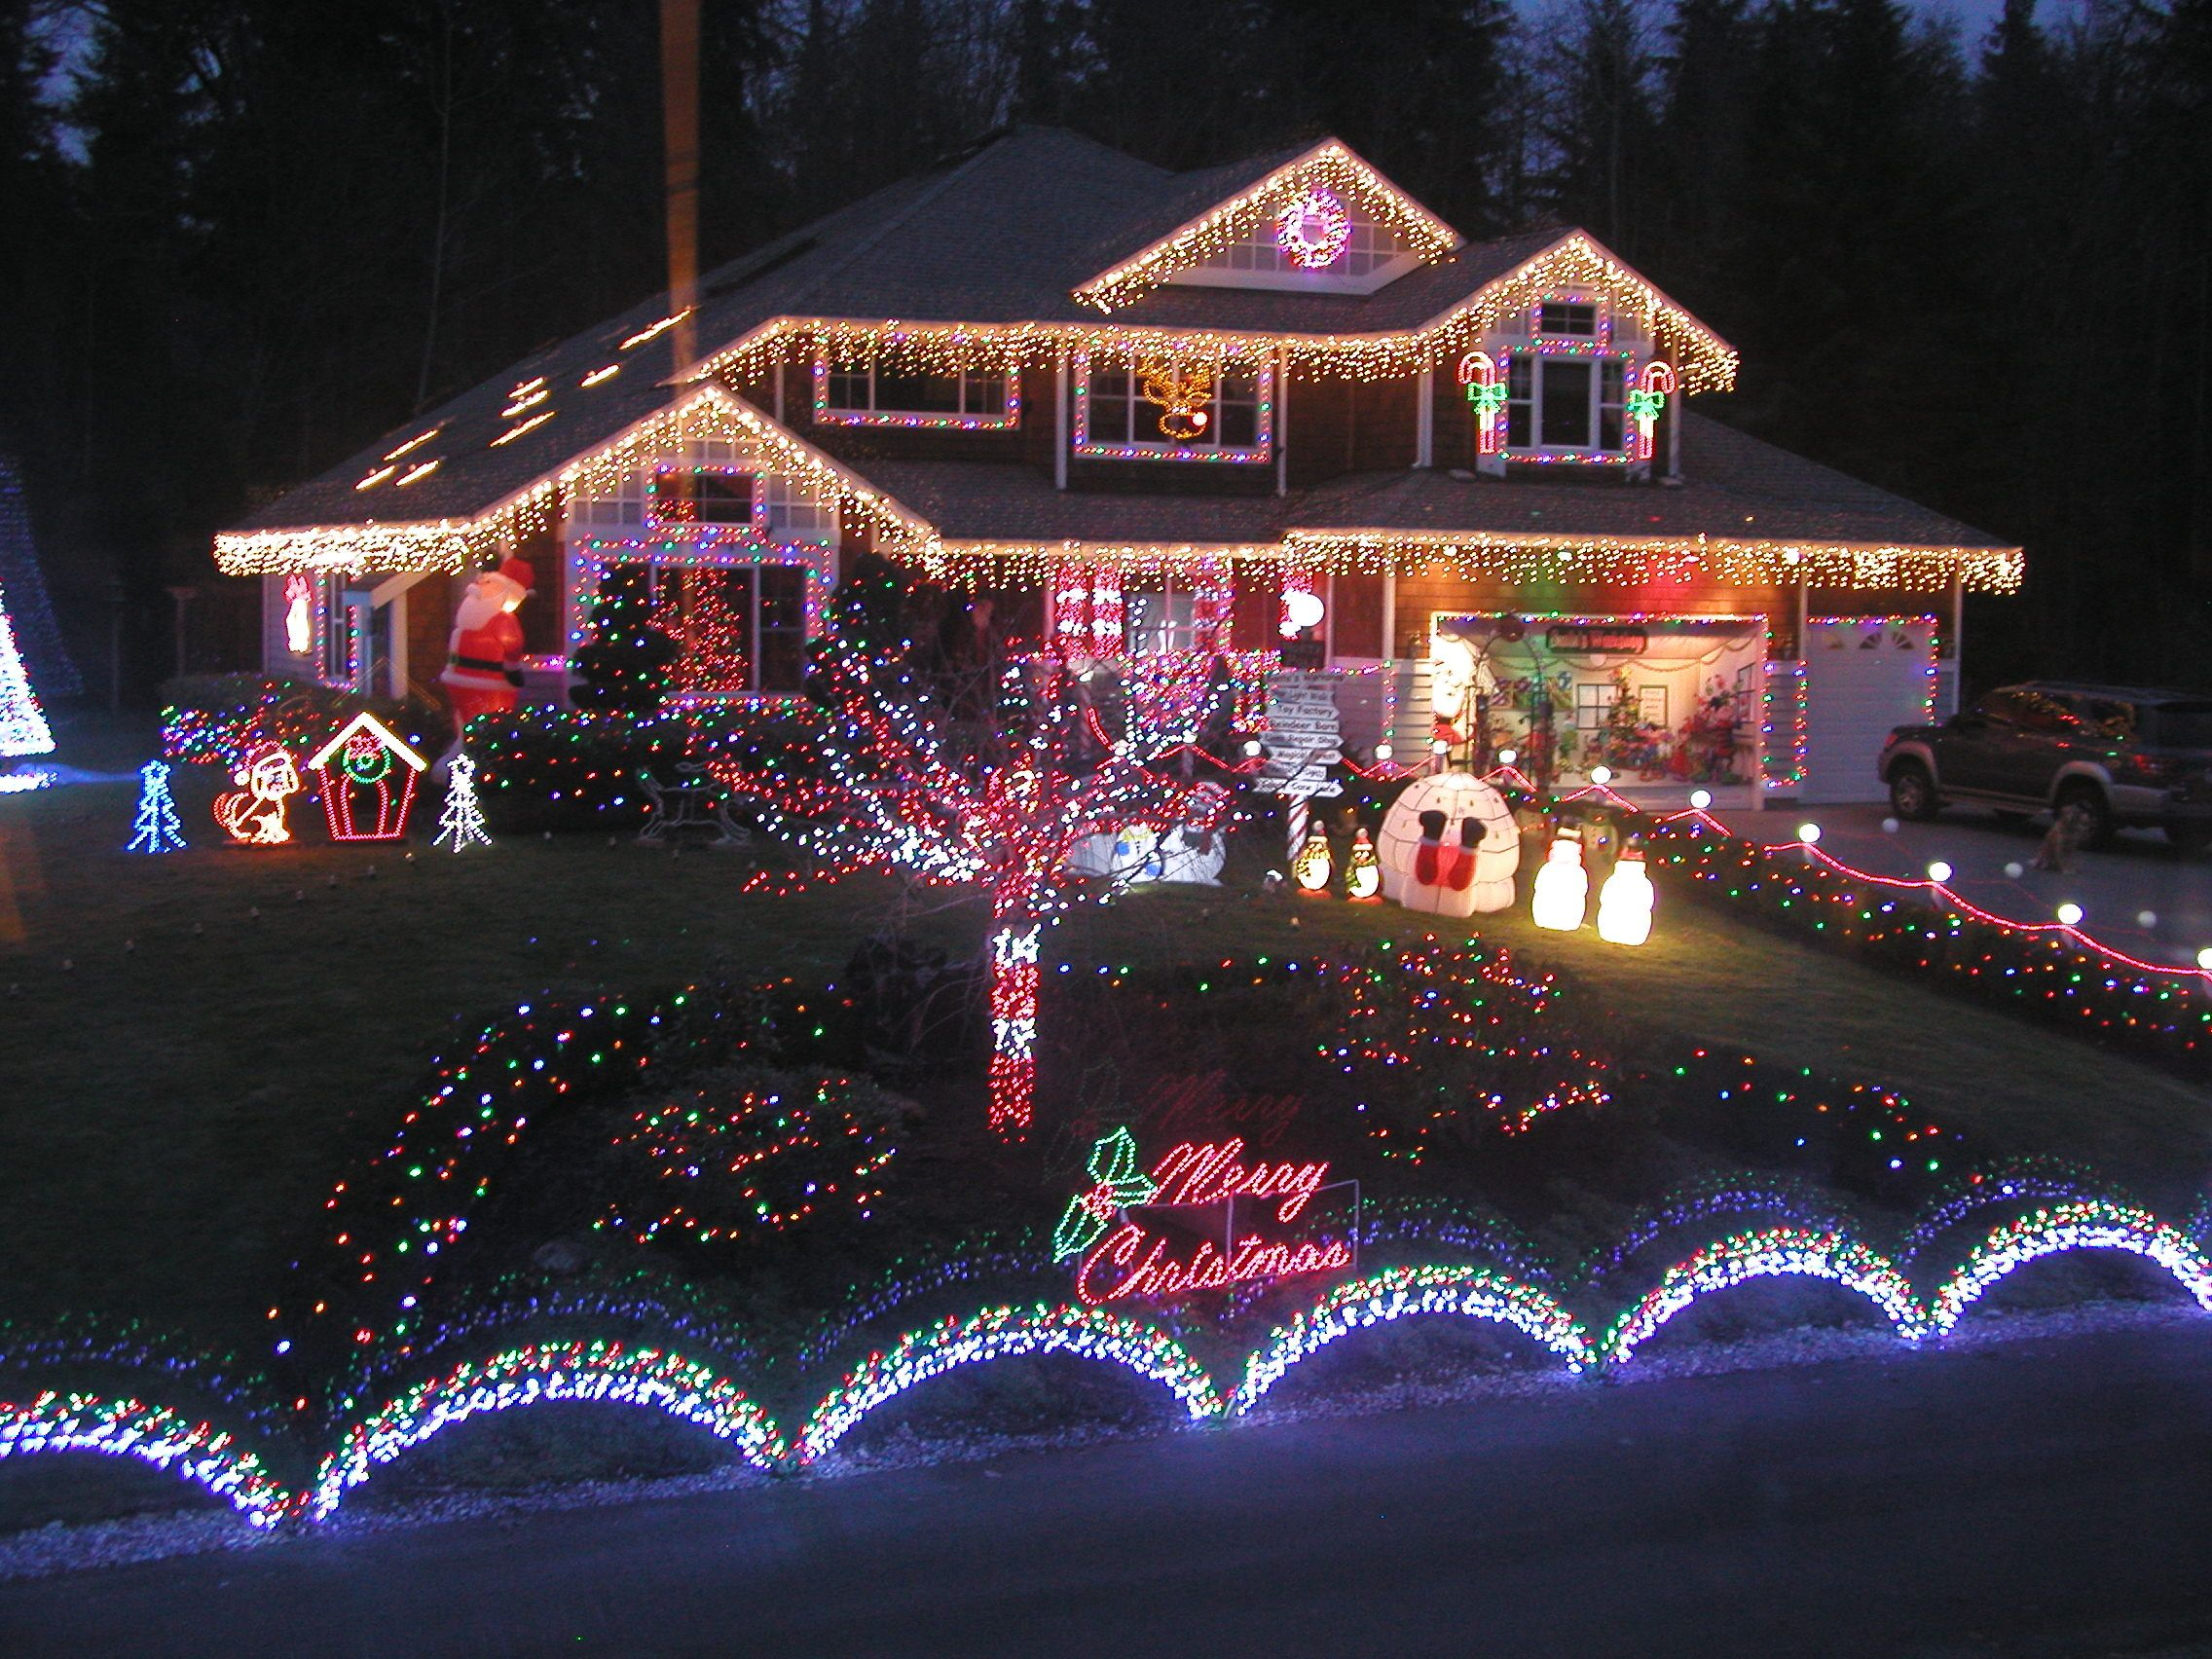 Outdoor Christmas Light Display Ideas Home Lighting Design Ideas Outdoor Christmas Light Displays Christmas House Lights Christmas Lights Outside